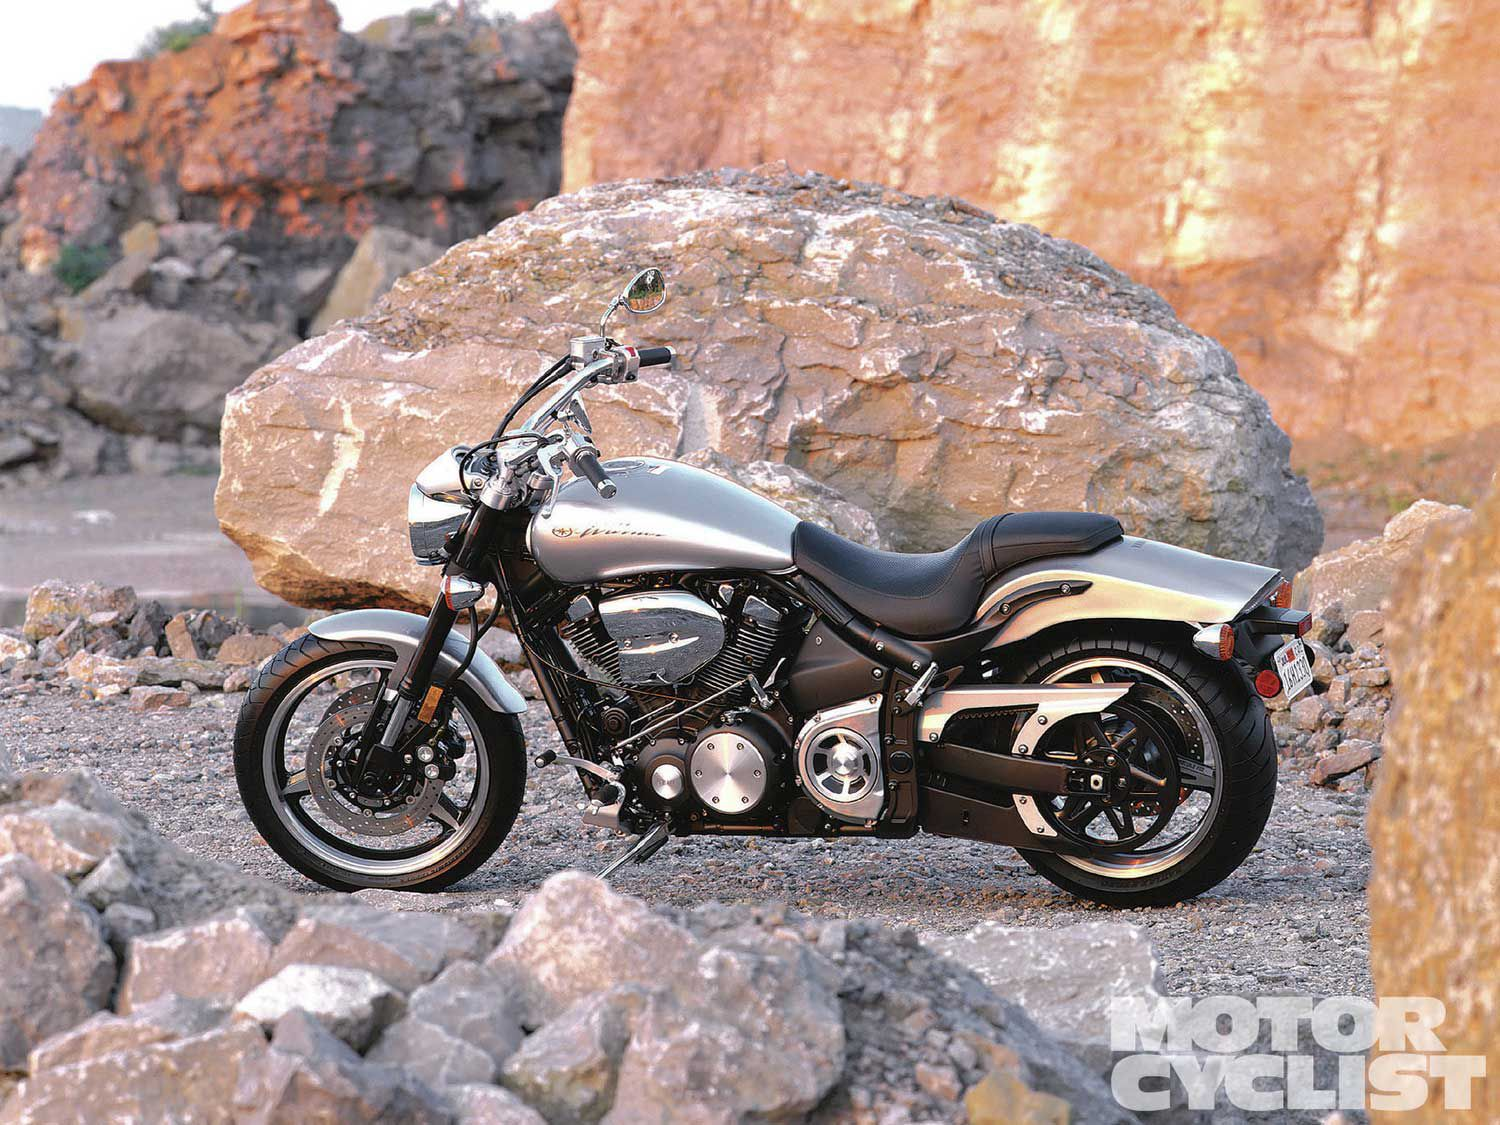 The Road Star Warrior remains desirable today for its aluminum chassis, hot-rod air-cooled motor, and sportbike suspension and brakes.